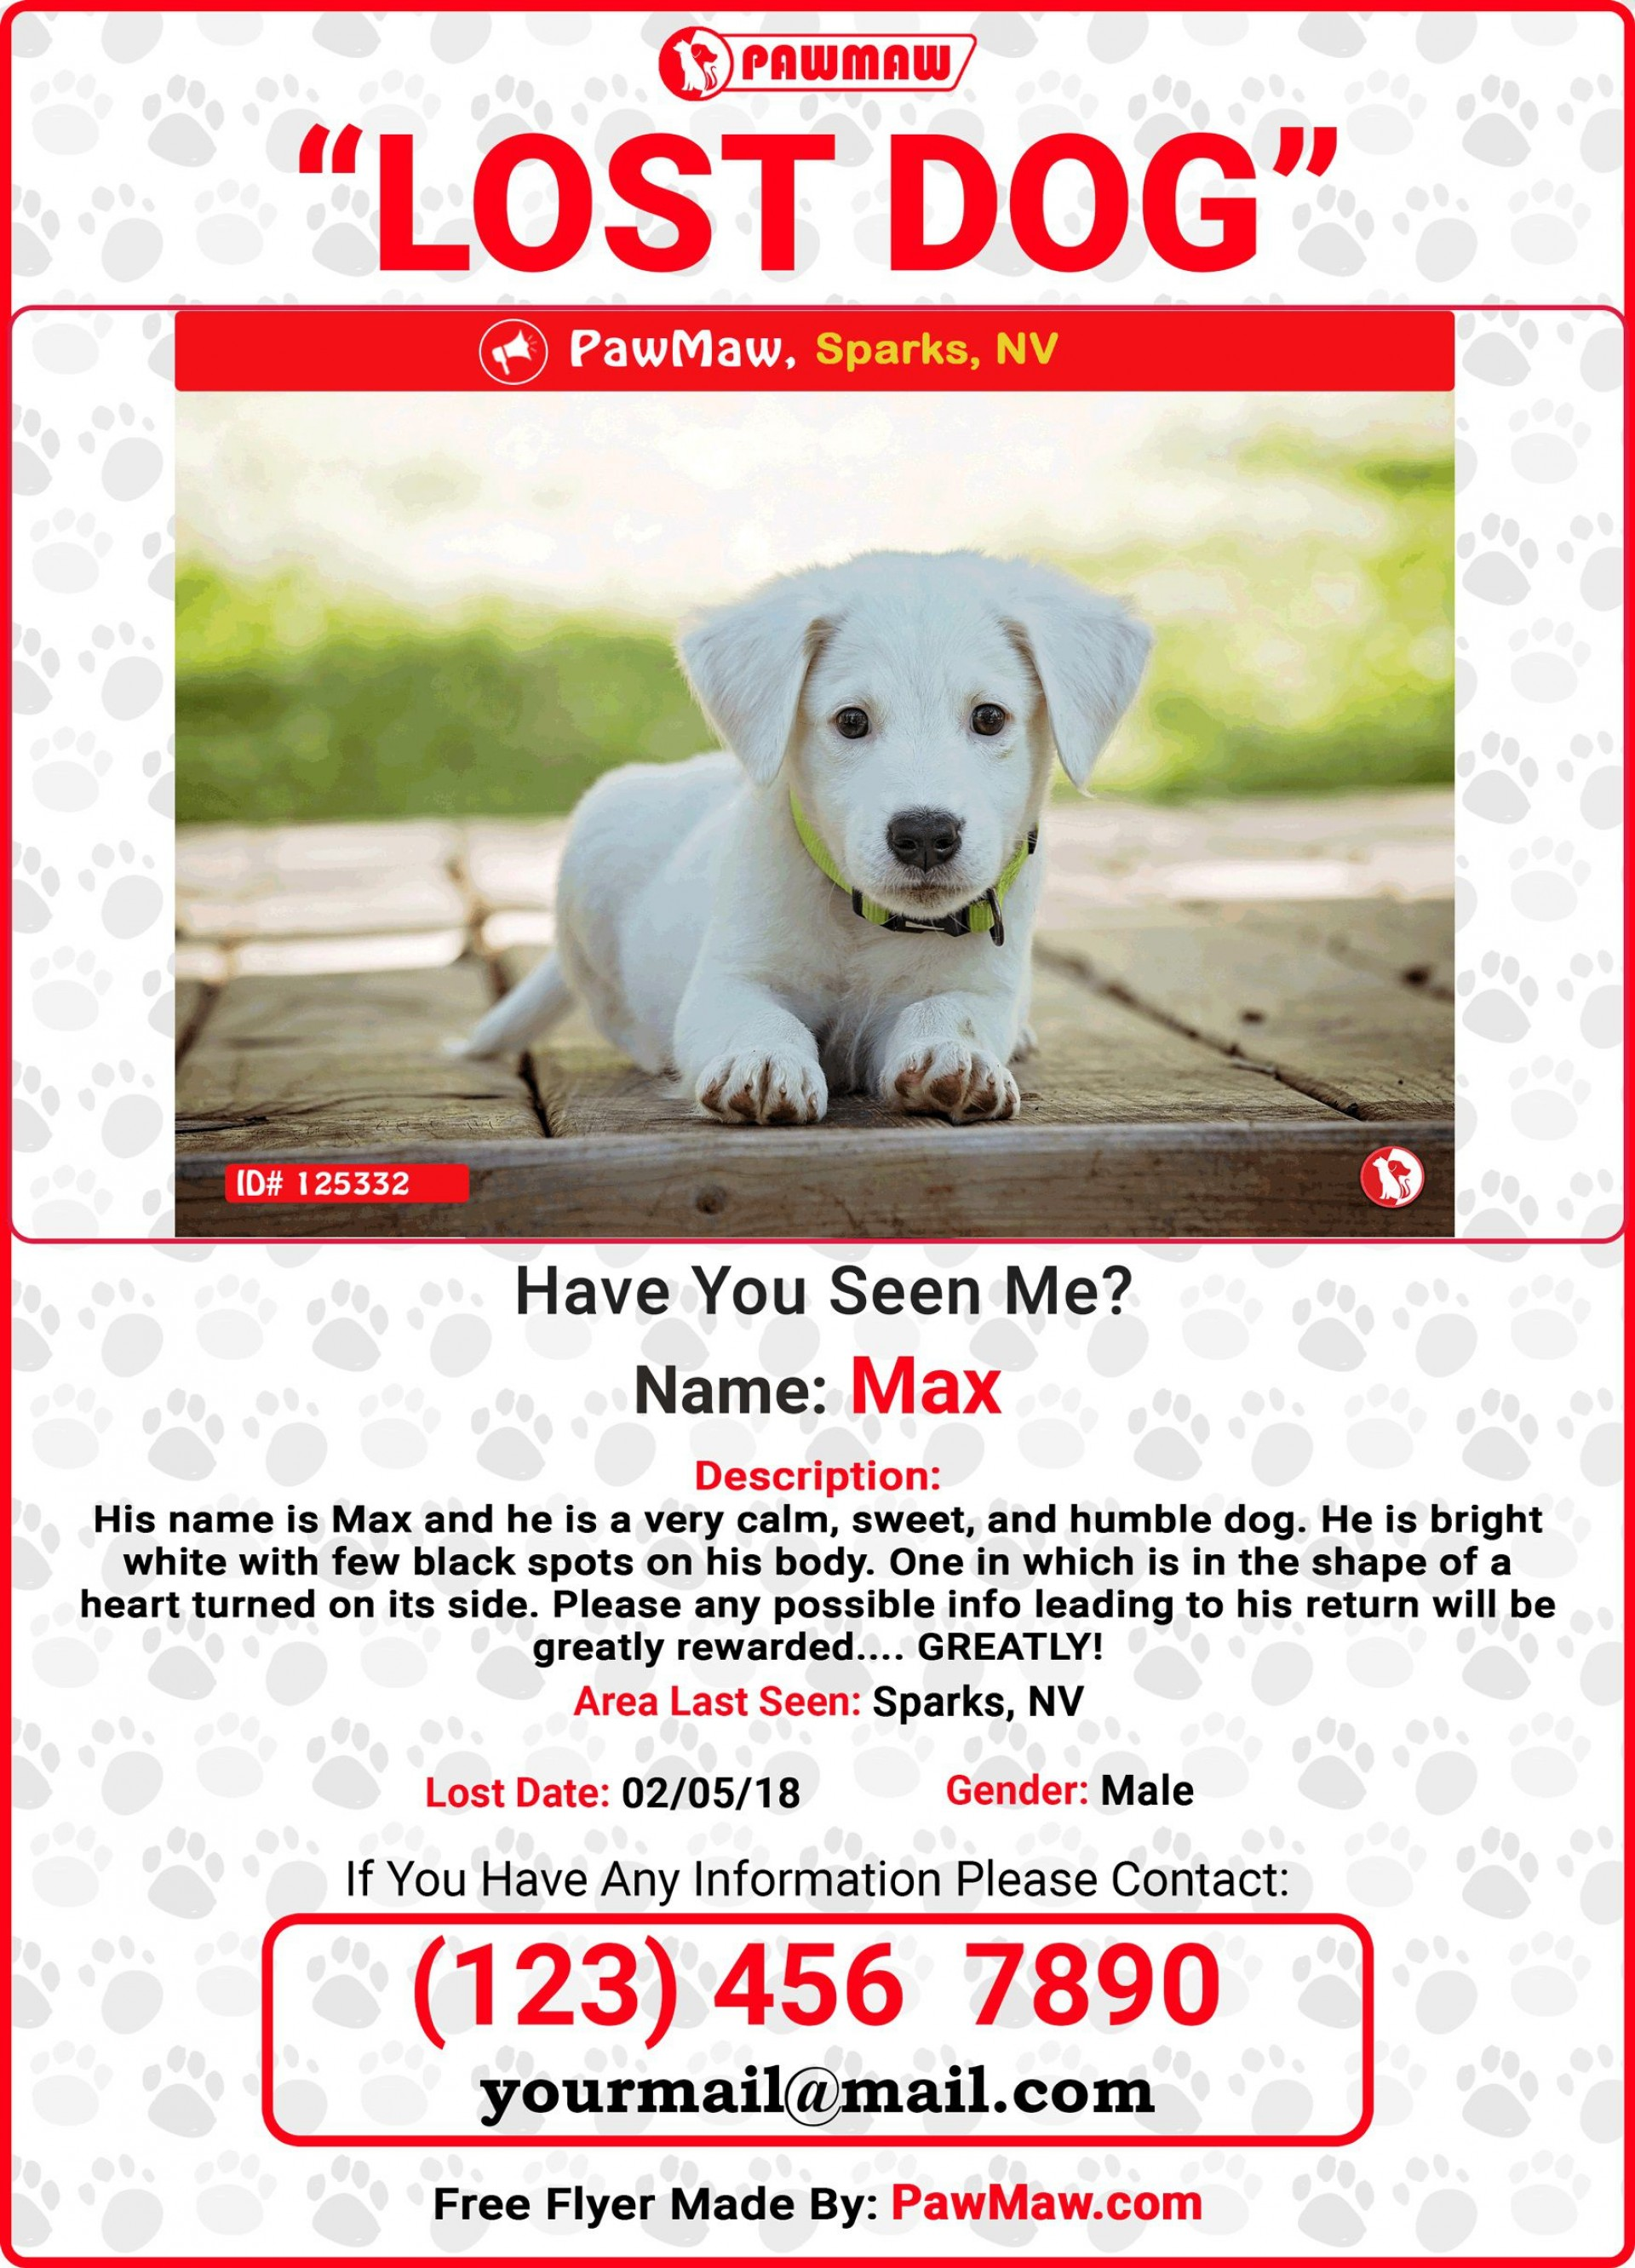 005 Unforgettable Lost Dog Flyer Template Sample  Printable Free Missing Pet1920